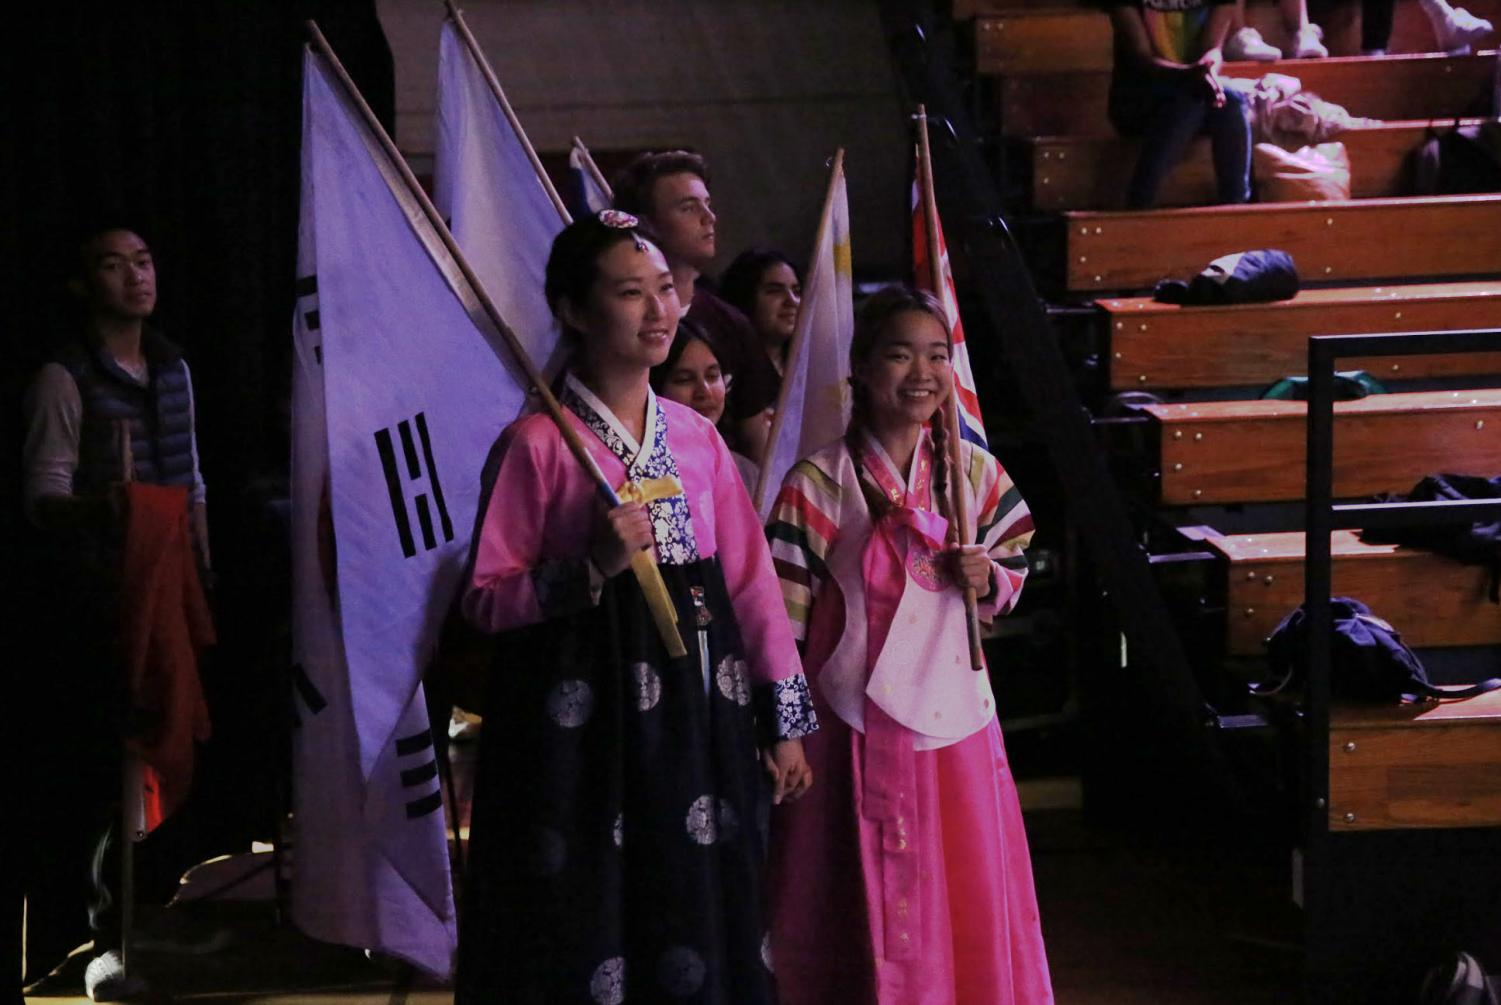 Students+in+traditional+Korean+clothing+carry+the+North+and+South+Korean+flags+in+preparation+to+run+hand+in+hand+in+the+Parade+of+Nations.